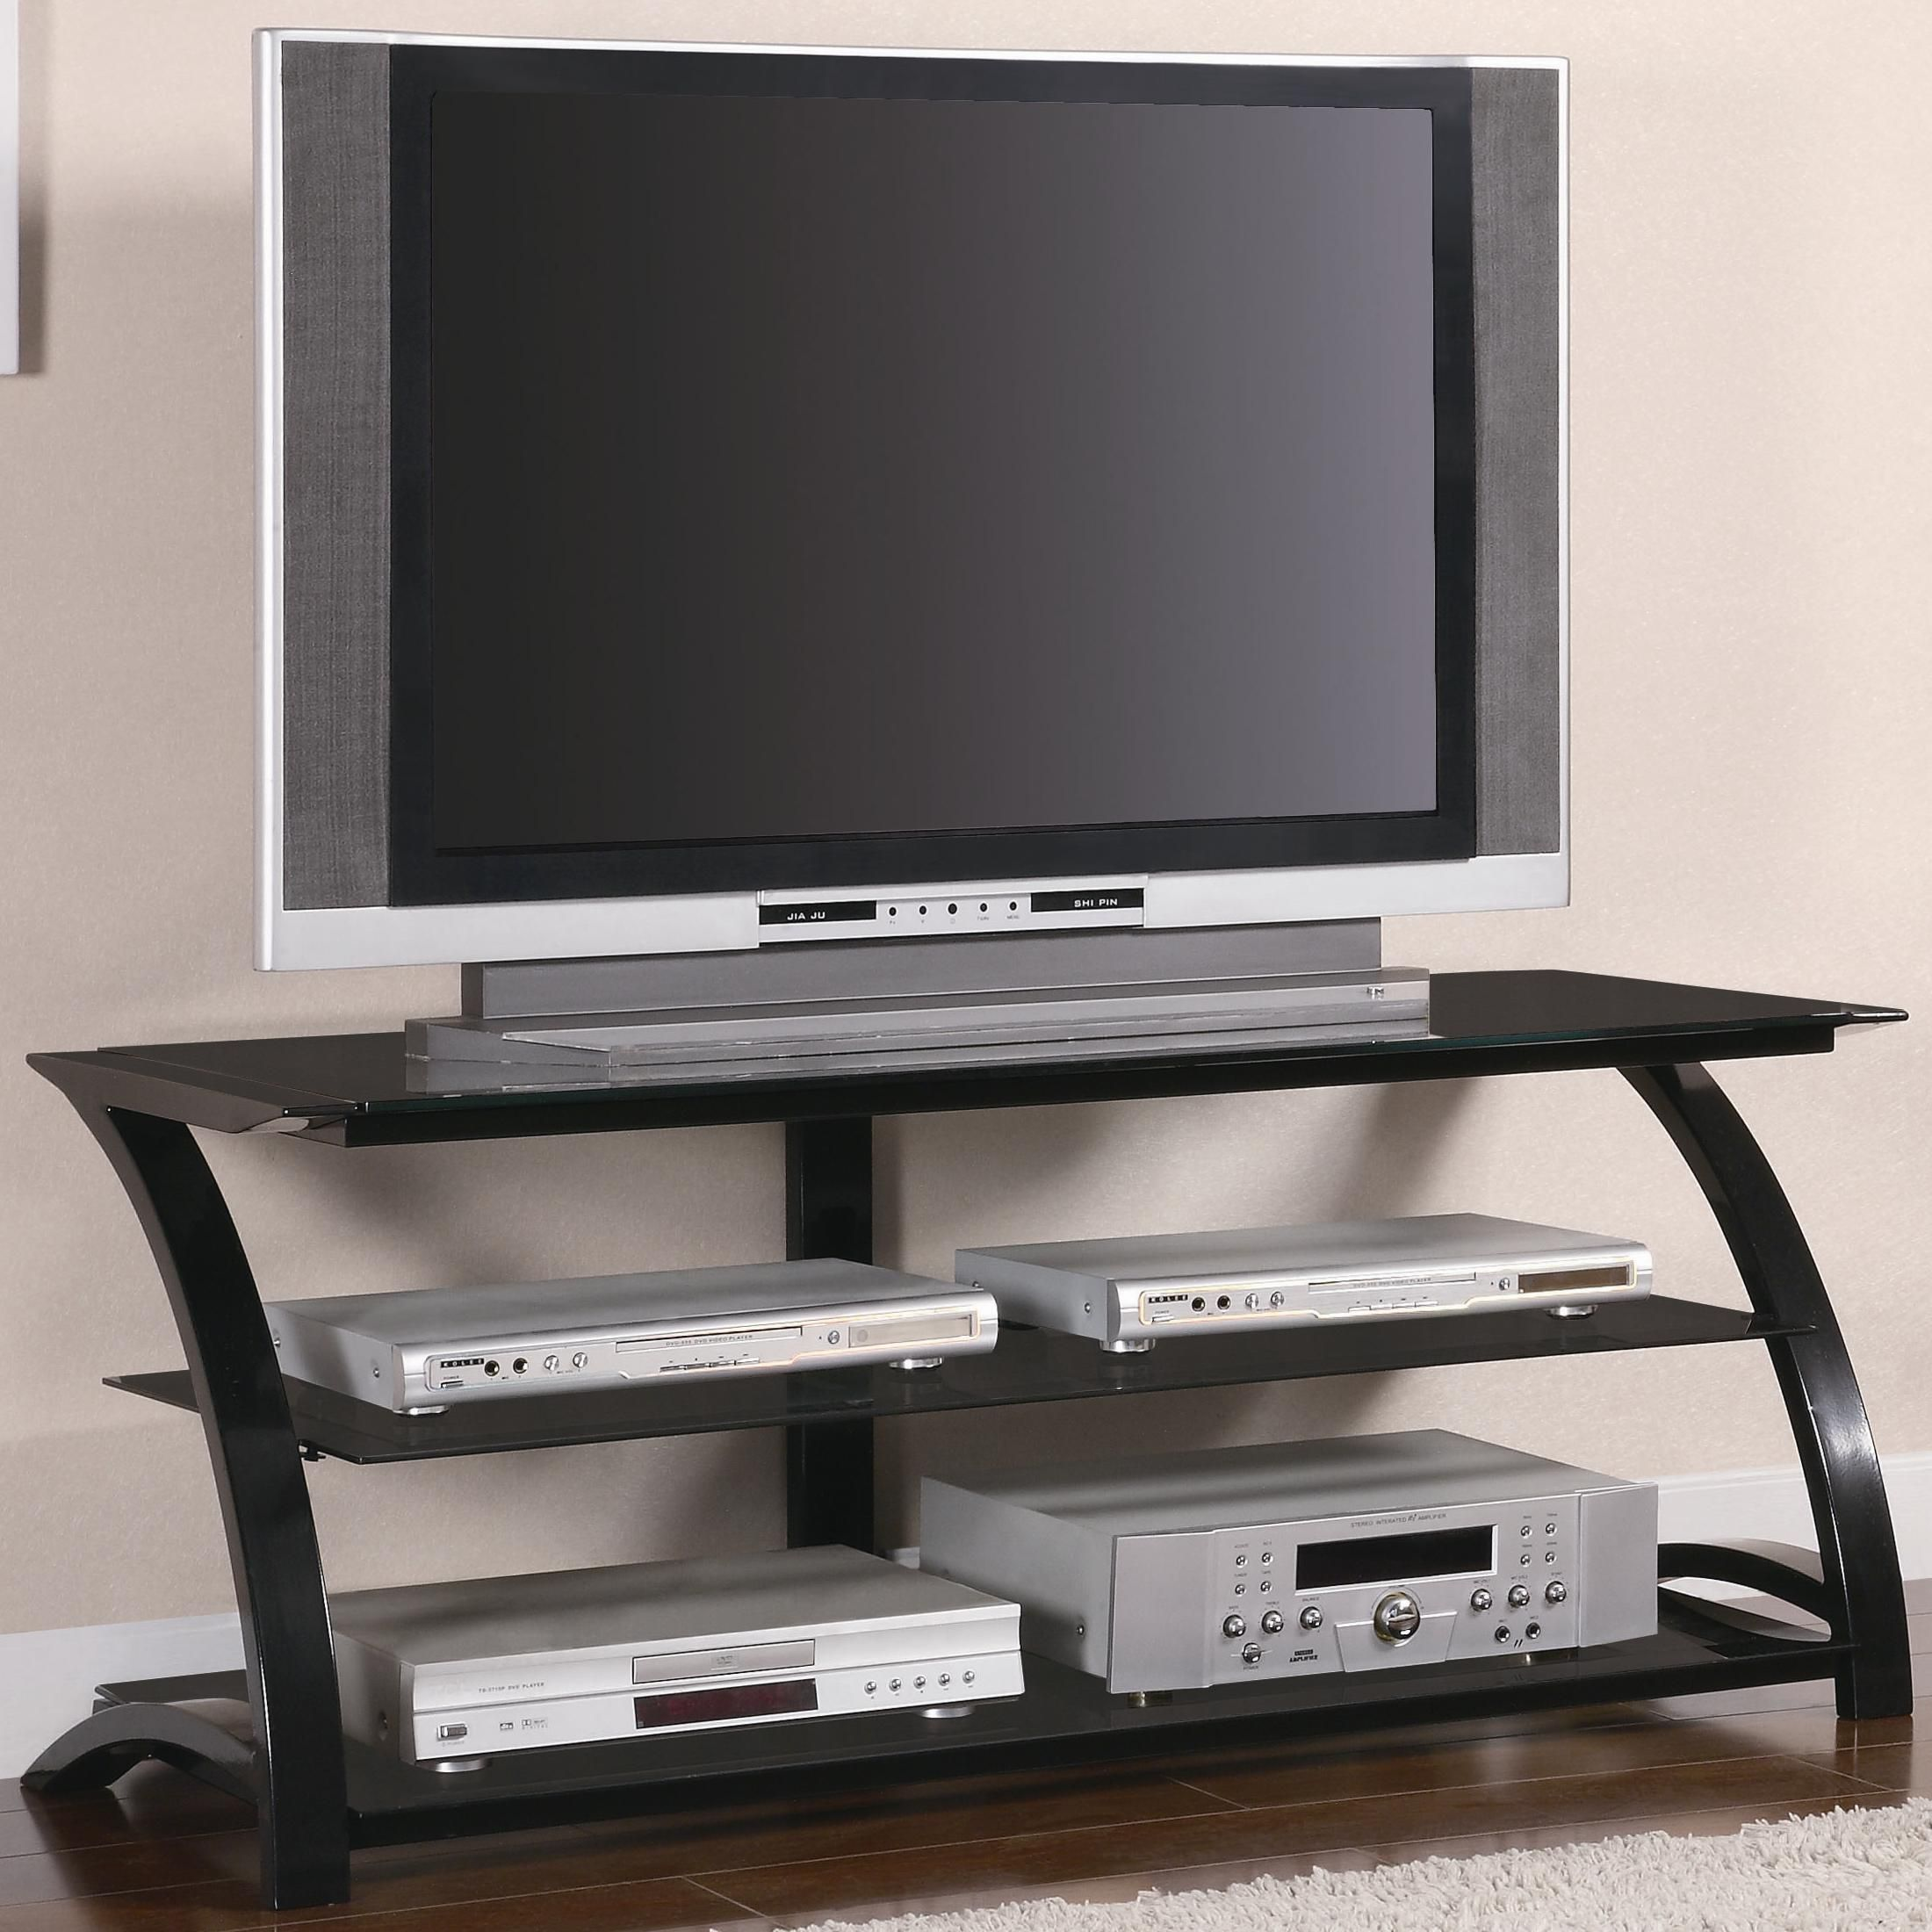 TV Stands Stand by Coaster  190 Casa sweet casa Pinterest